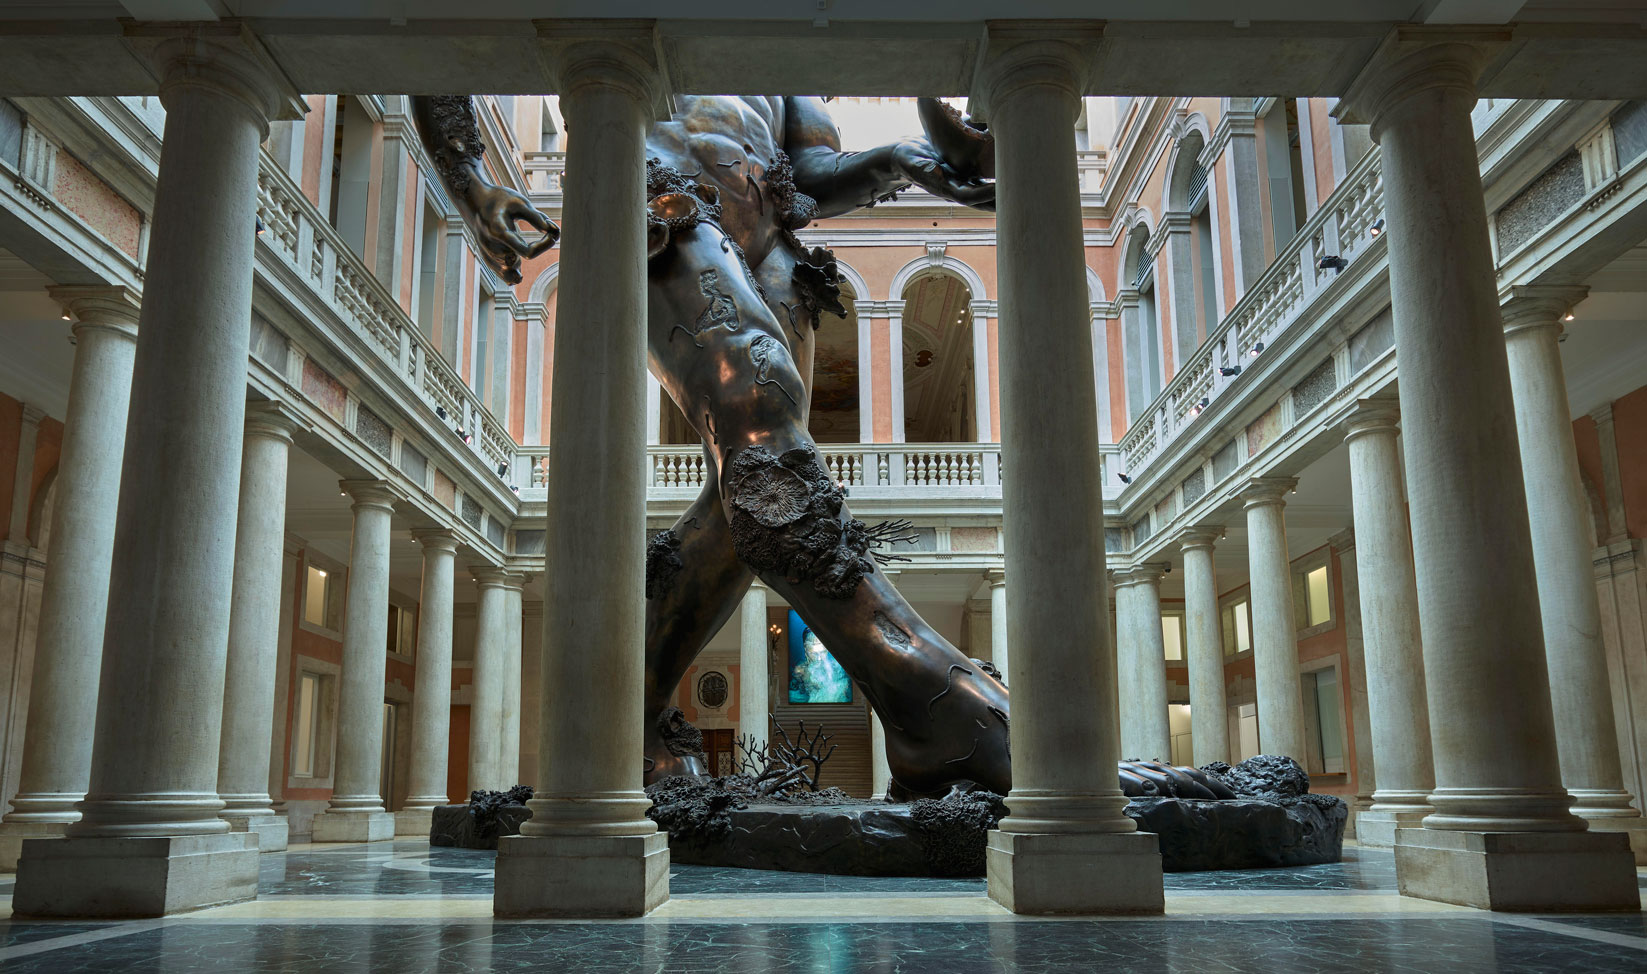 Atrium: